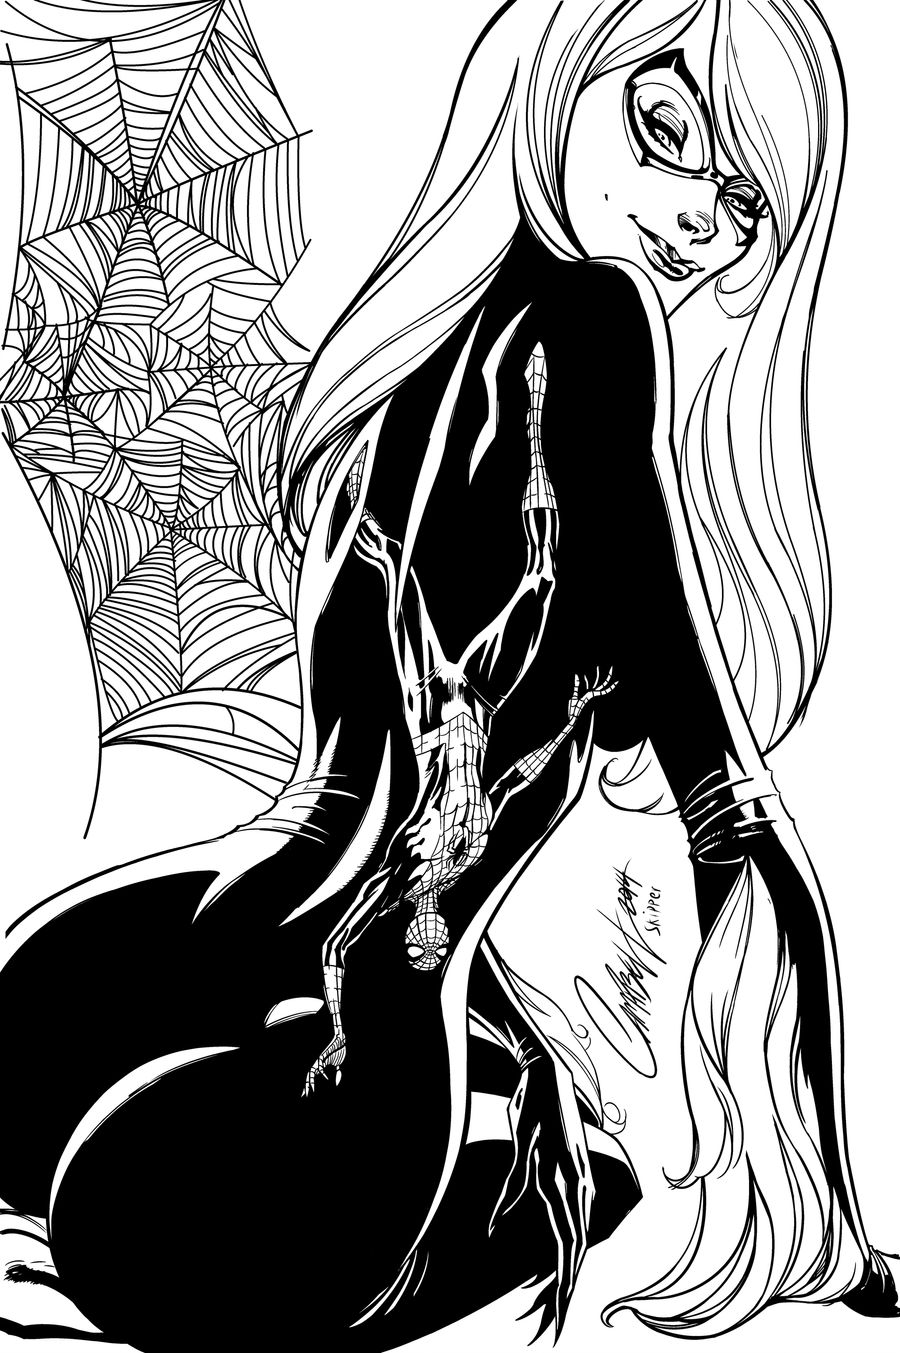 Blackcat Cover - Inks by Brianskipper